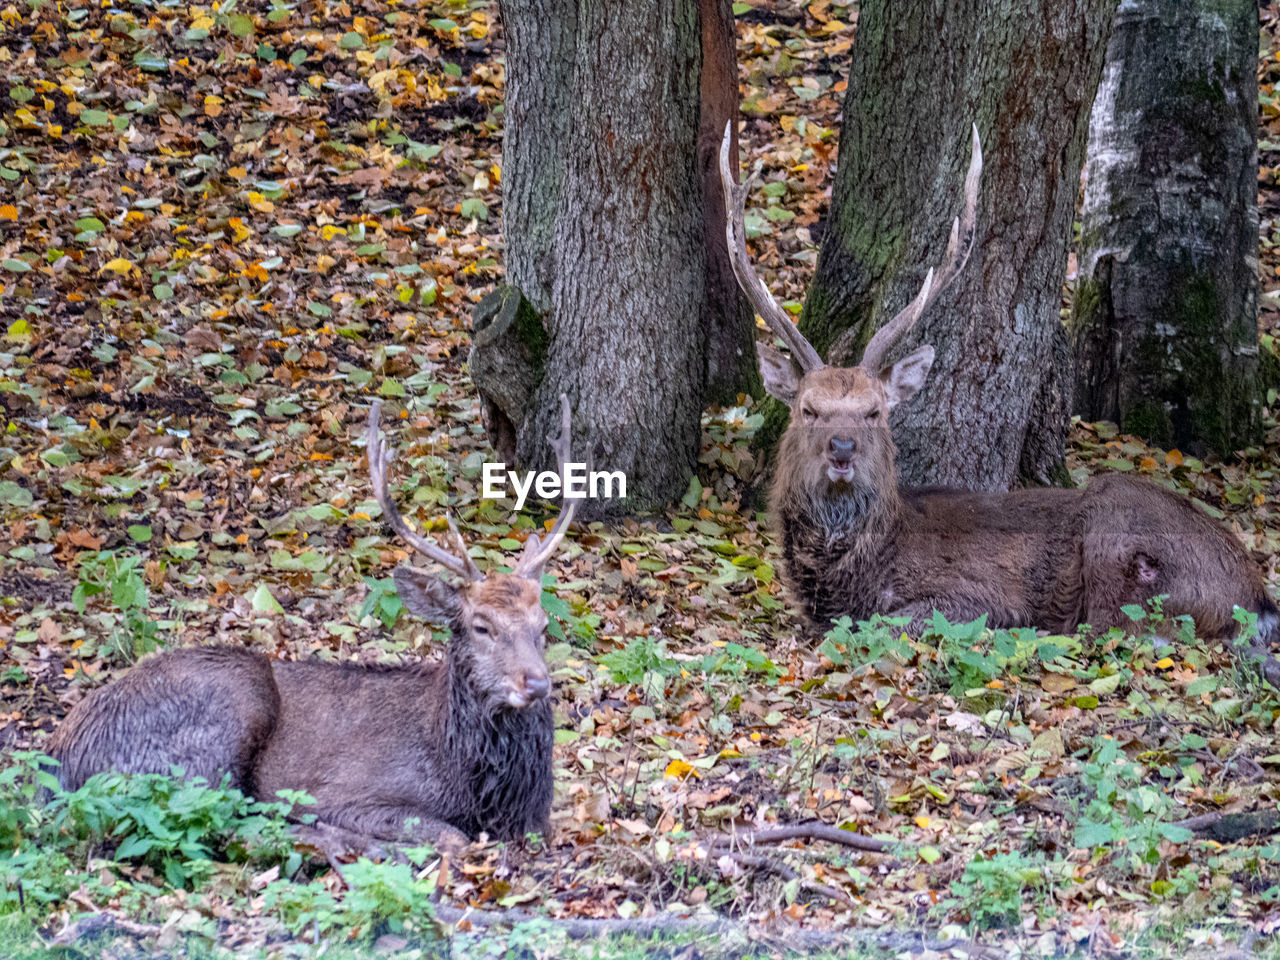 animal, animal themes, mammal, tree, portrait, animal wildlife, one animal, animals in the wild, land, looking at camera, tree trunk, trunk, plant, nature, forest, day, no people, vertebrate, autumn, deer, outdoors